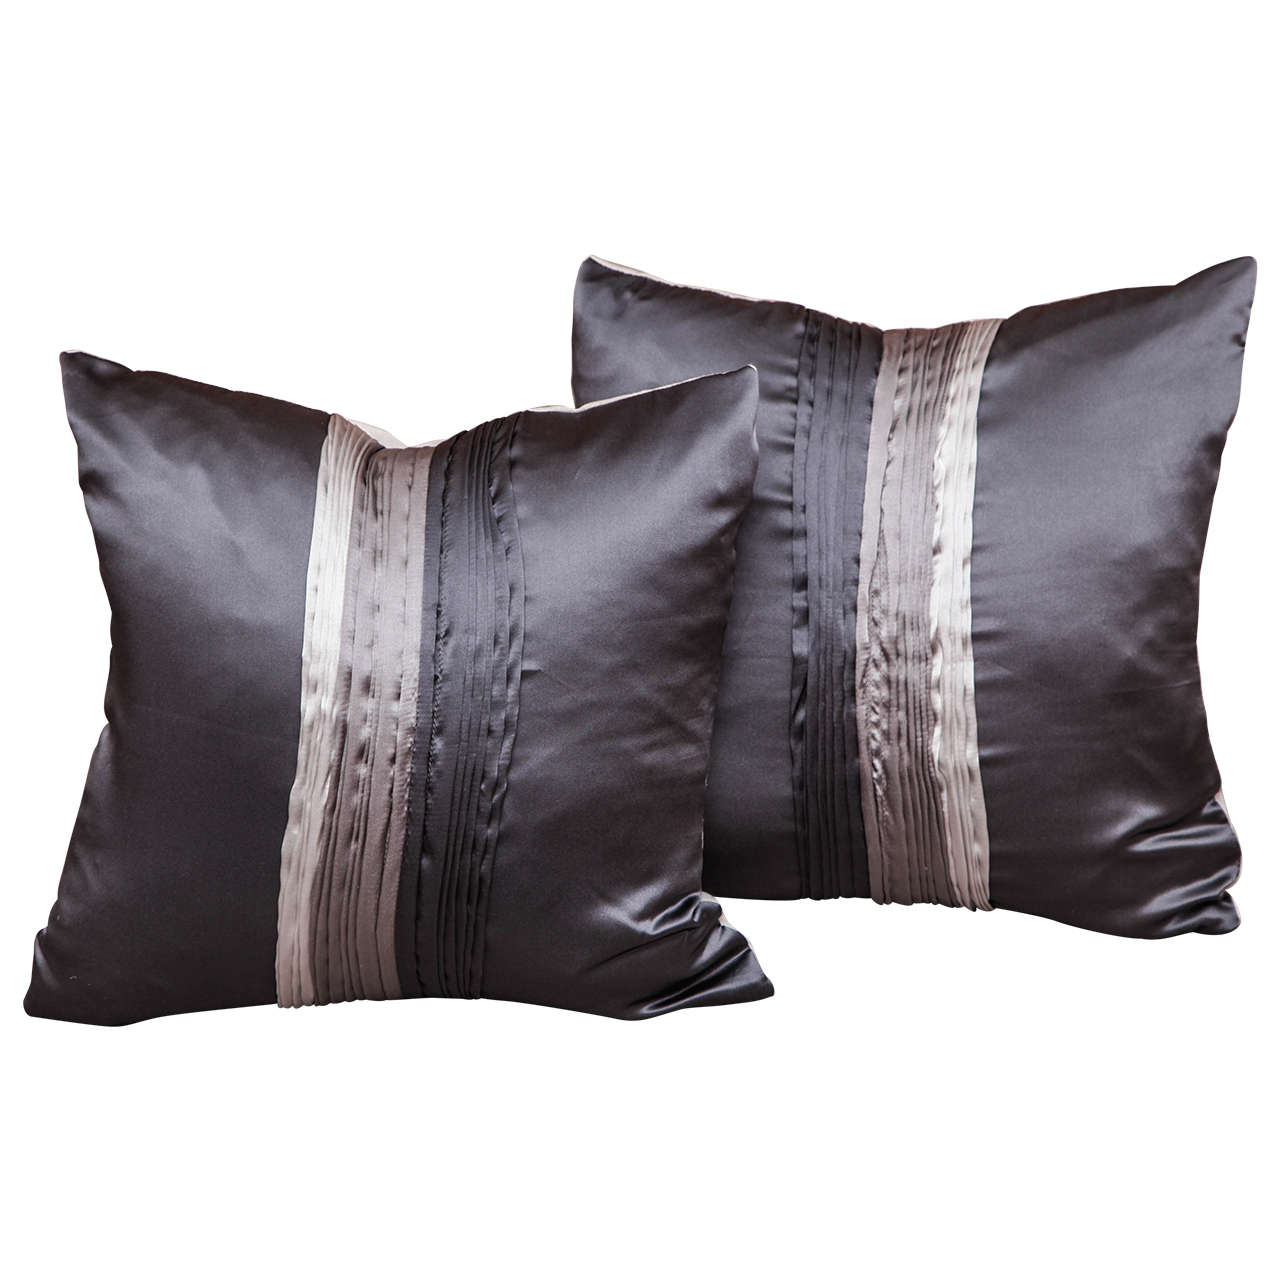 Silk Elegant Pillows with Art Deco Style